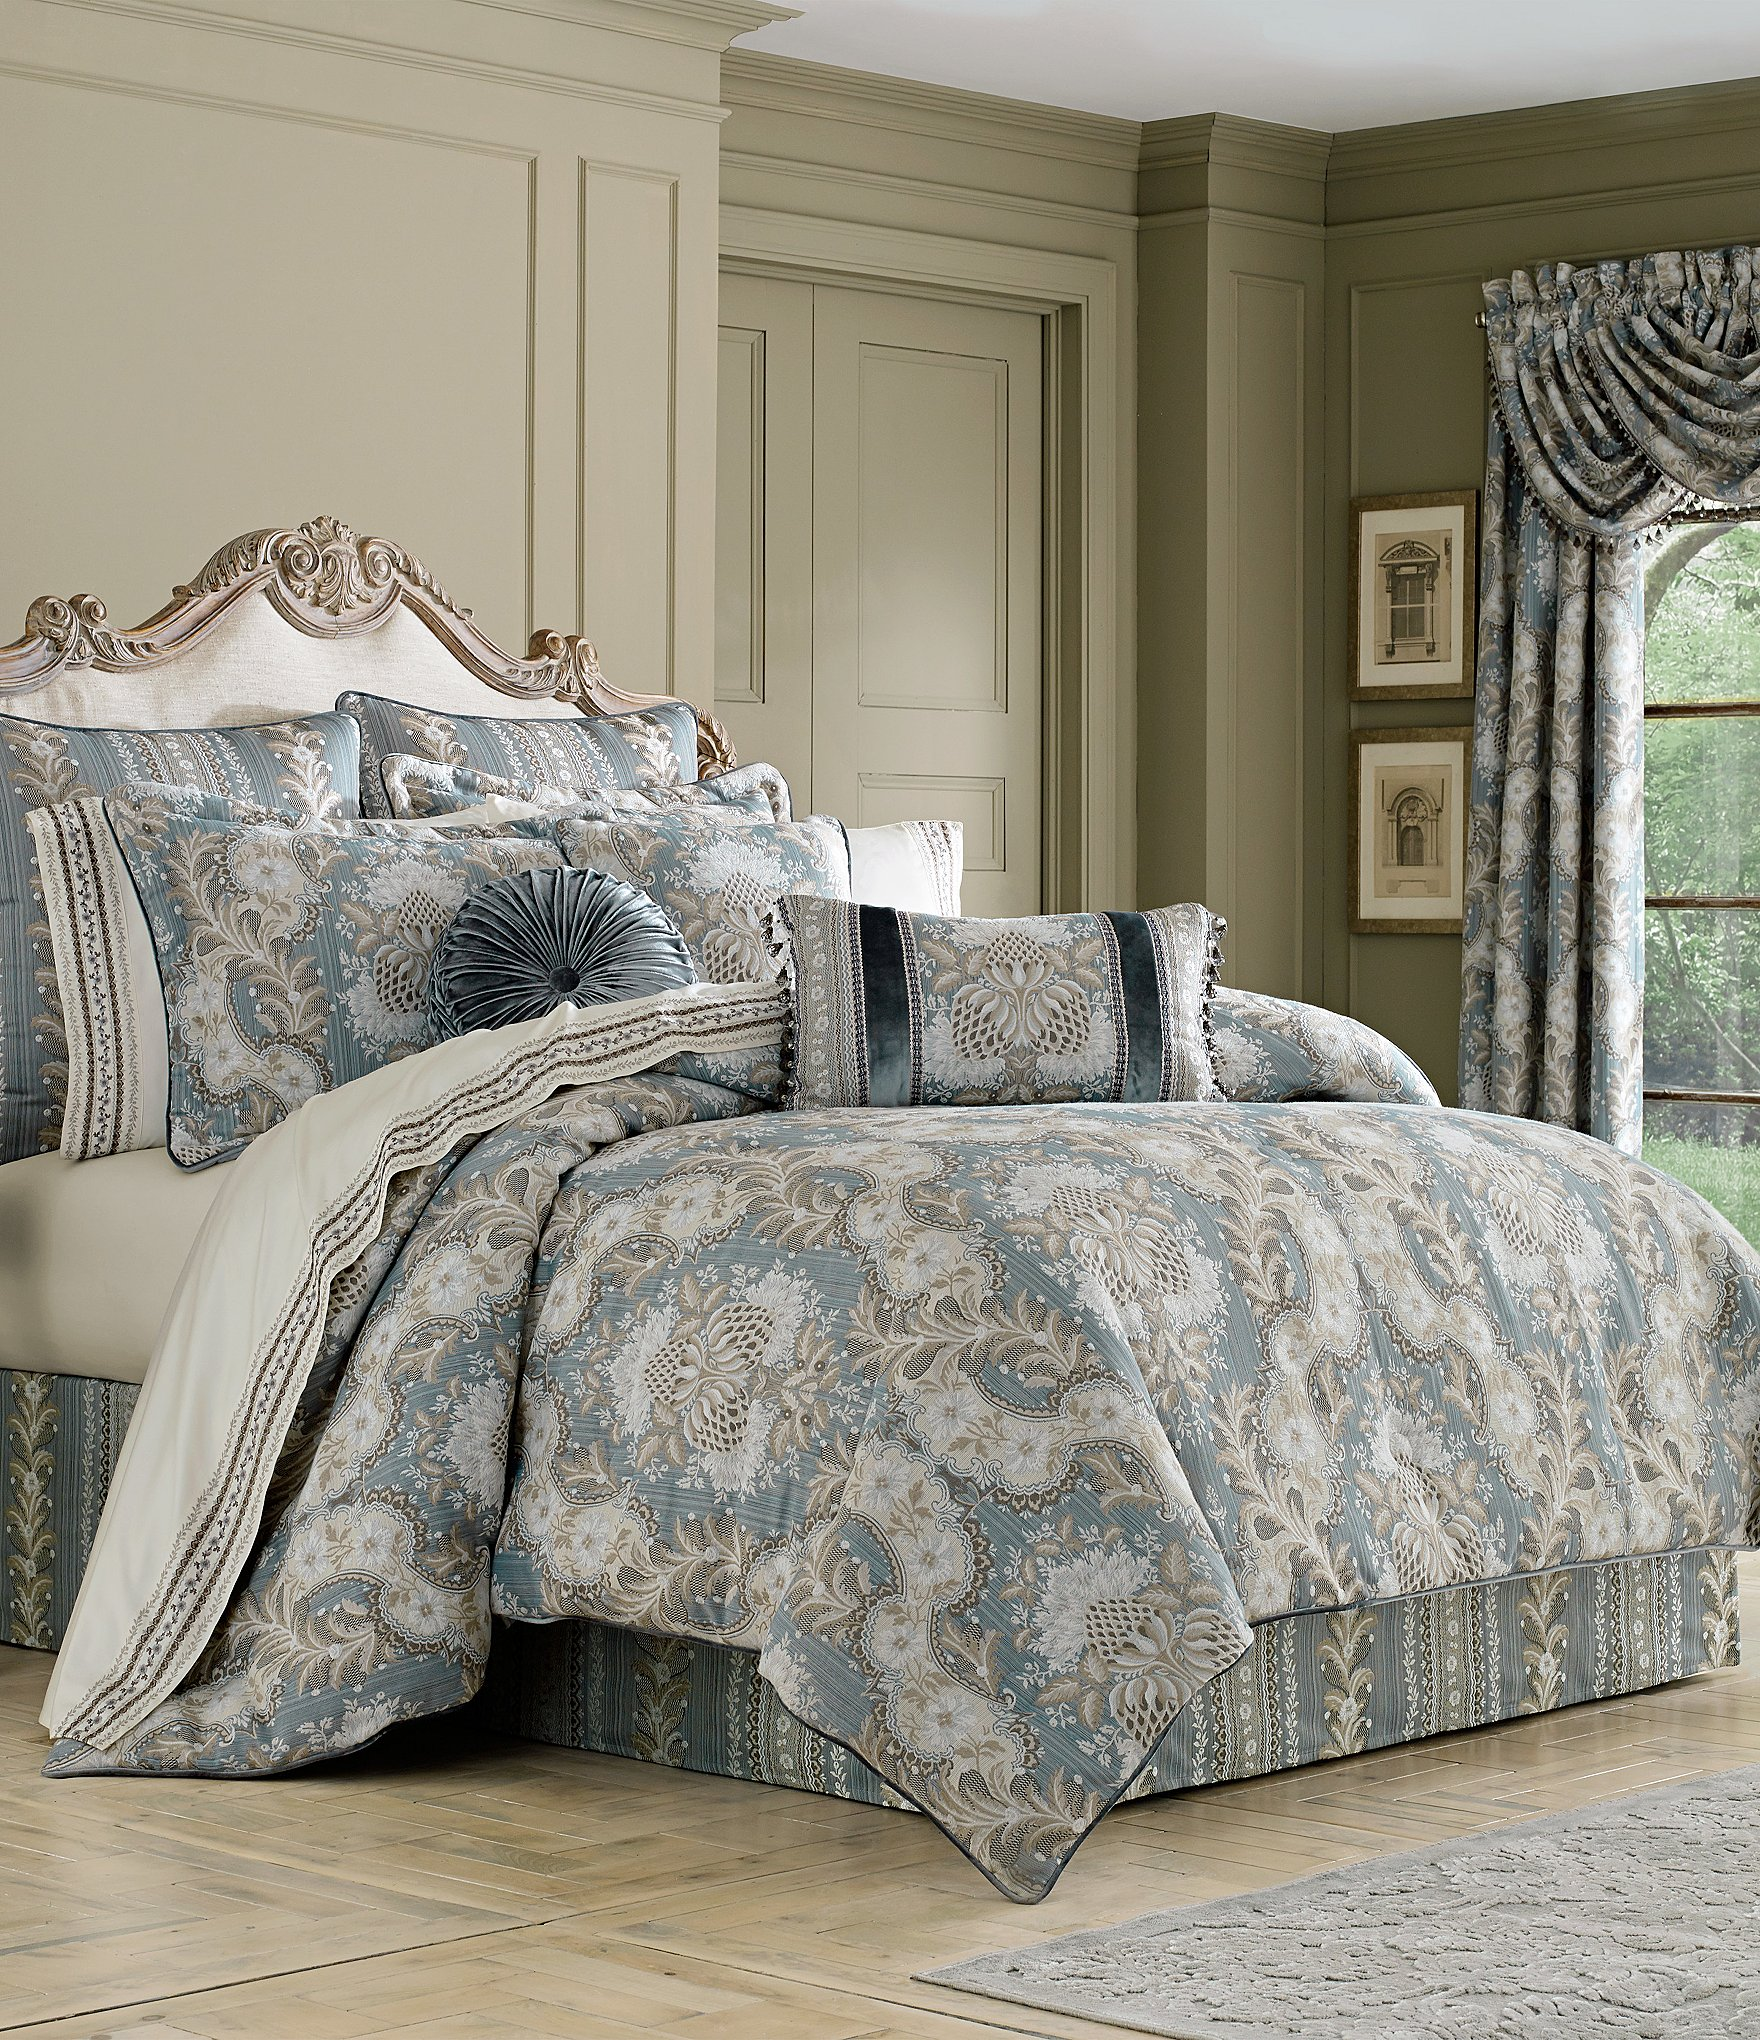 J Queen New York Crystal Palace Floral Jacquard Comforter